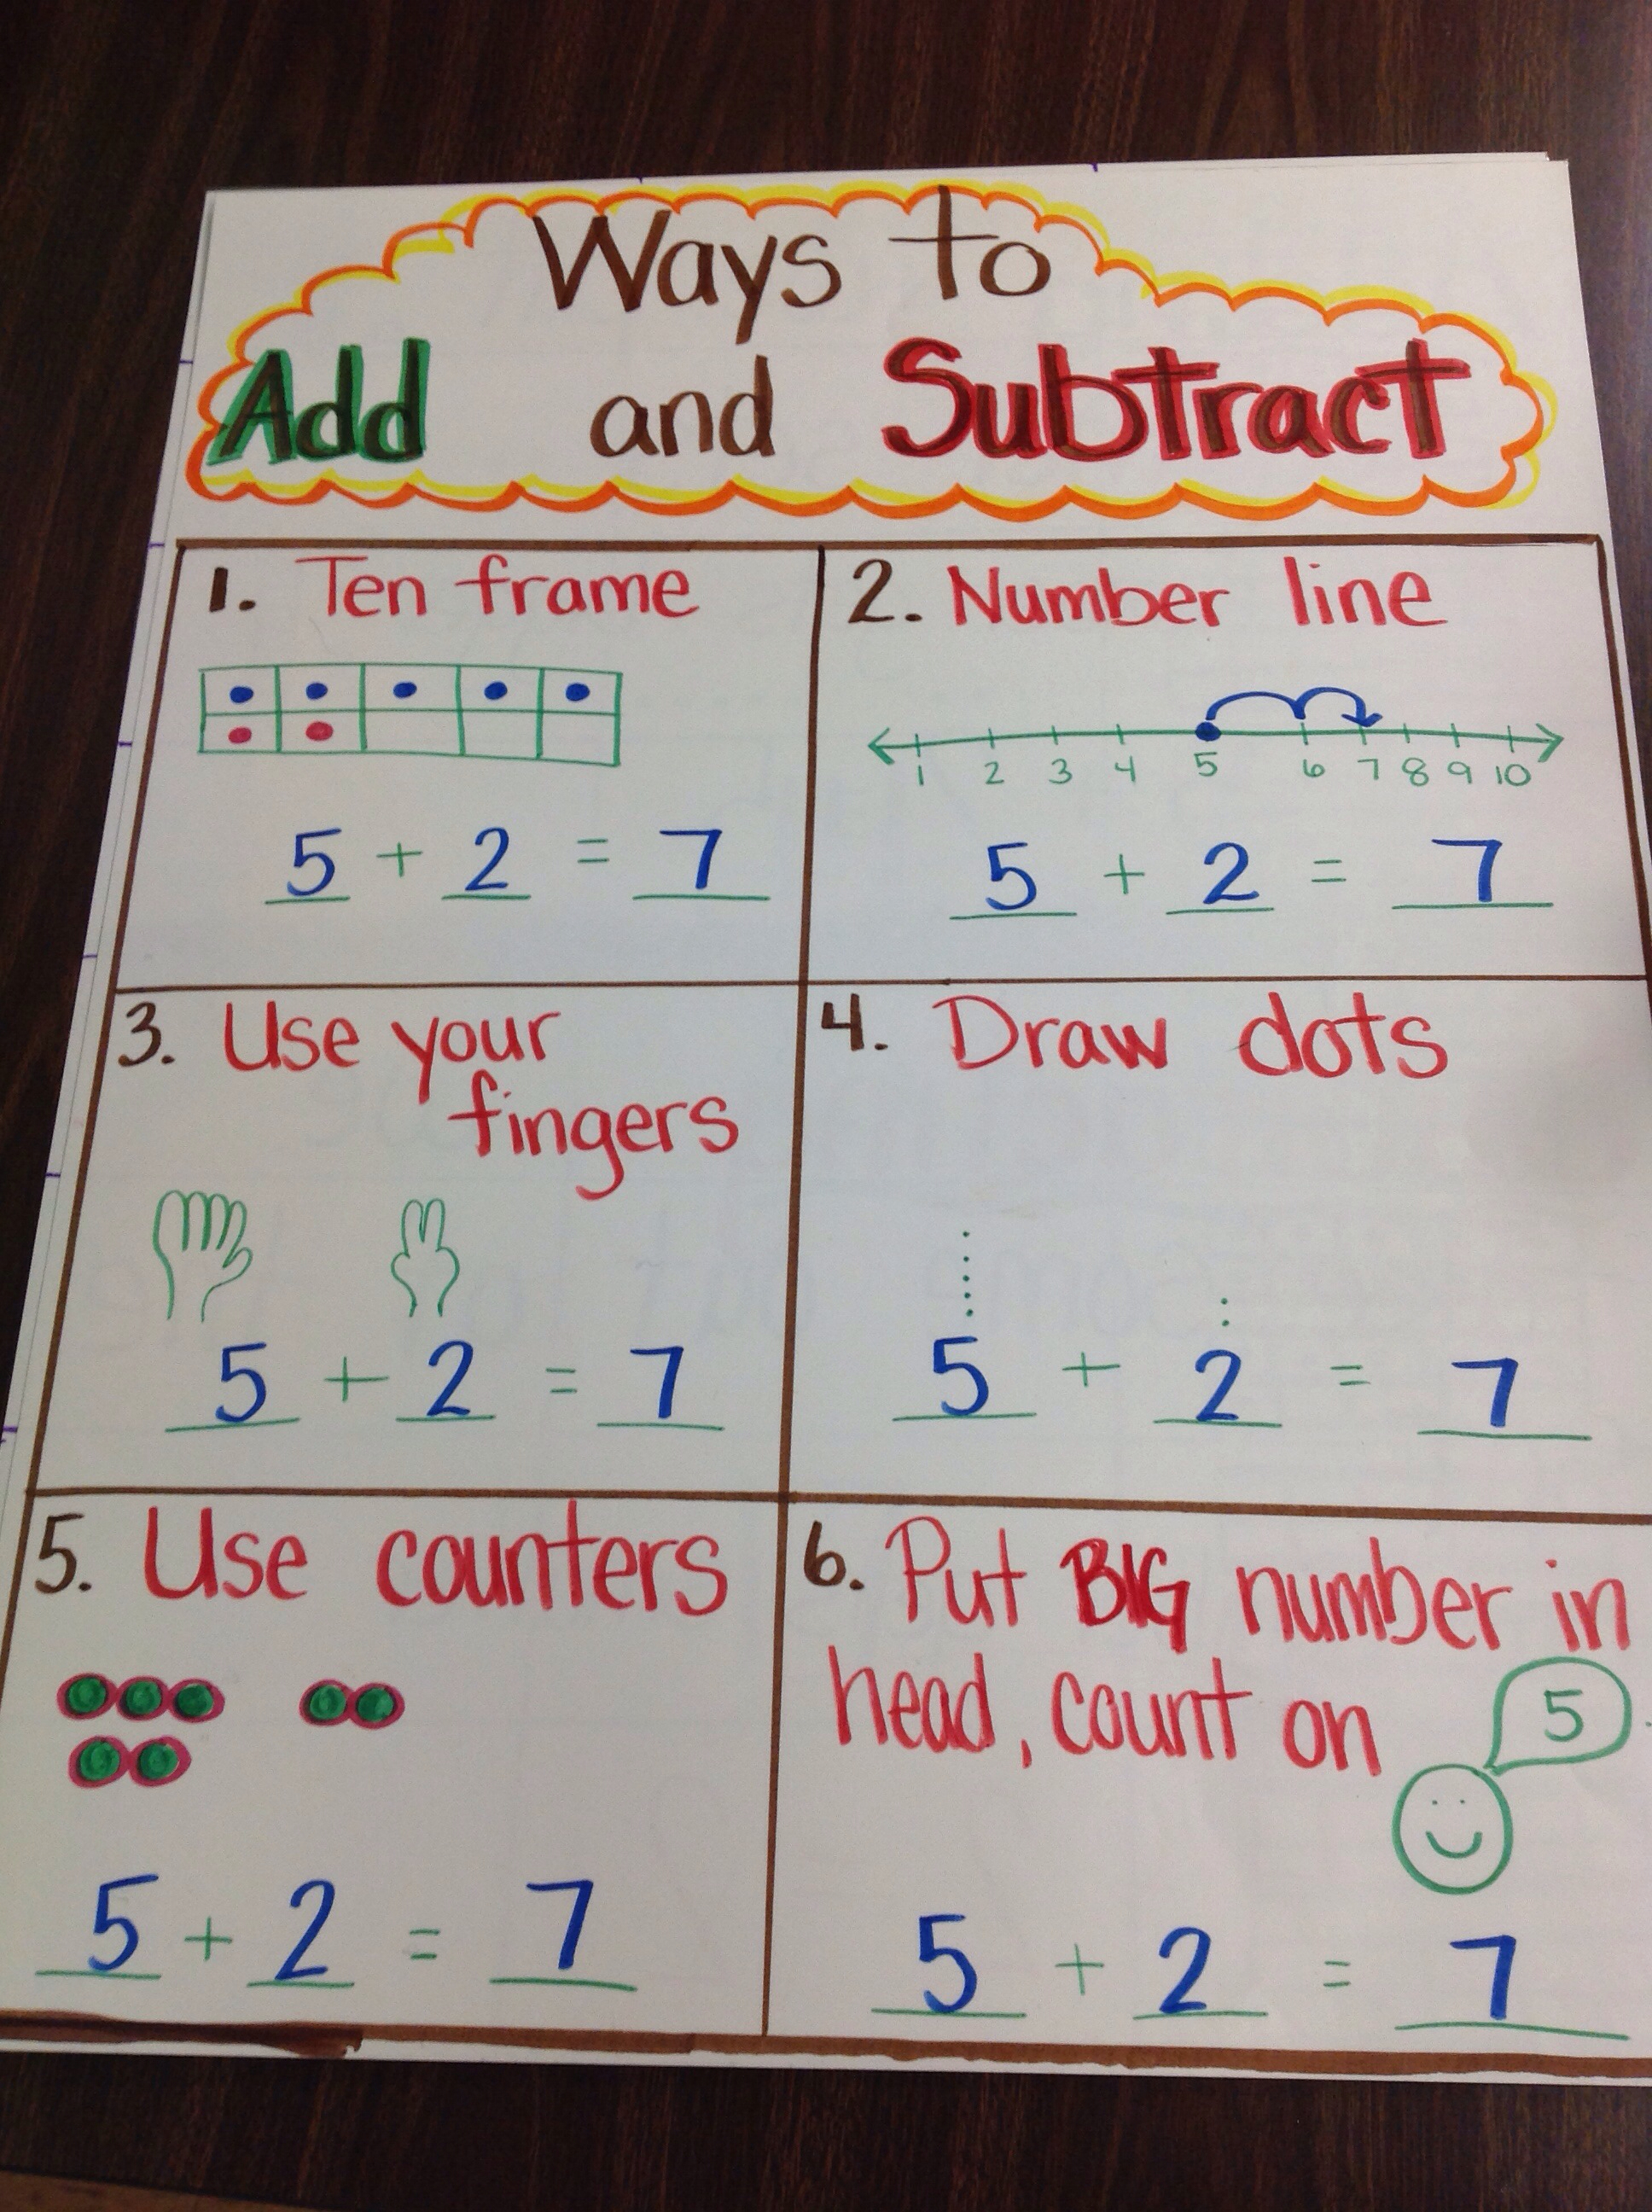 addition-and-subtraction-1yivp5e  Way We Use Math on facts printable worksheets, worksheets missing numbers 1, questions multiplication division worksheet, multiplication question quiz, table for, practi test print, chart for kids, games chips chart 10 1,